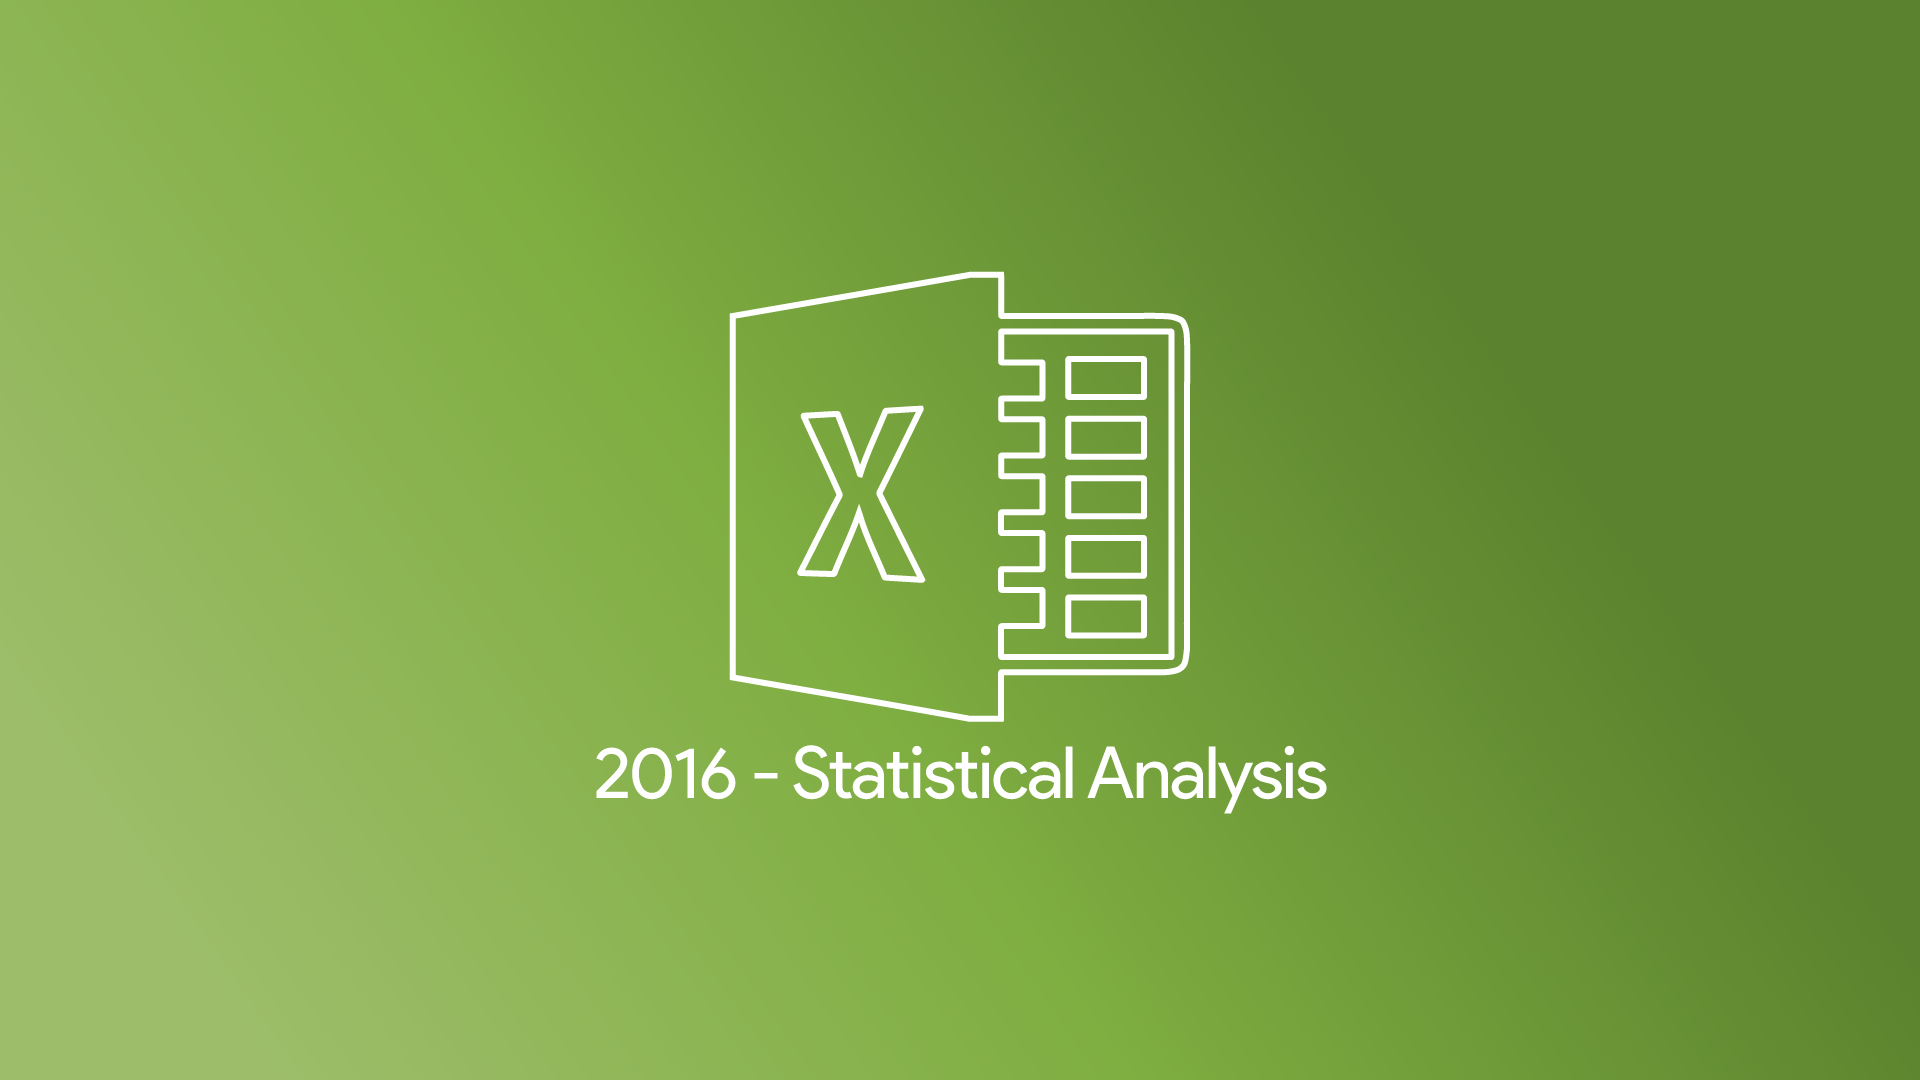 Excel 2016 - Statistical Analysis